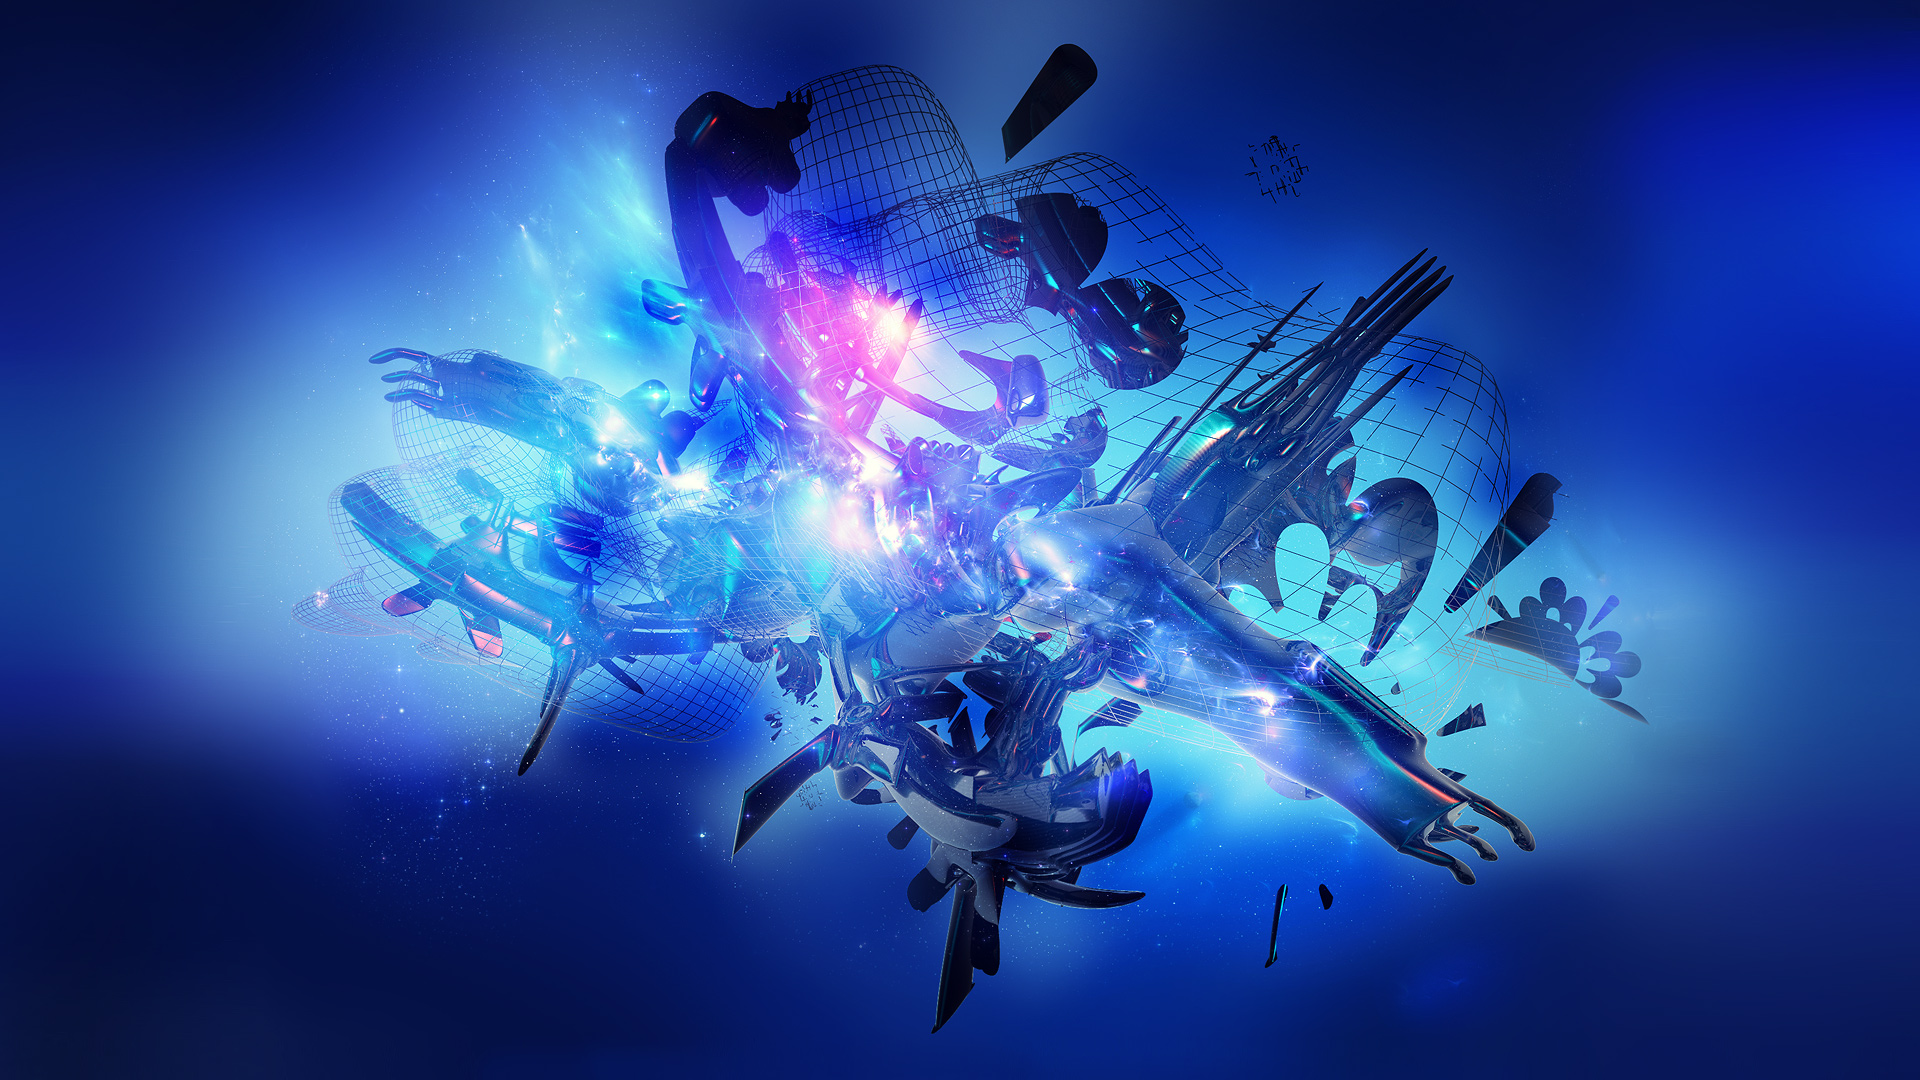 Abstract Wallpapers 1080p Hd jpeg Abstract Blue P 1920x1080